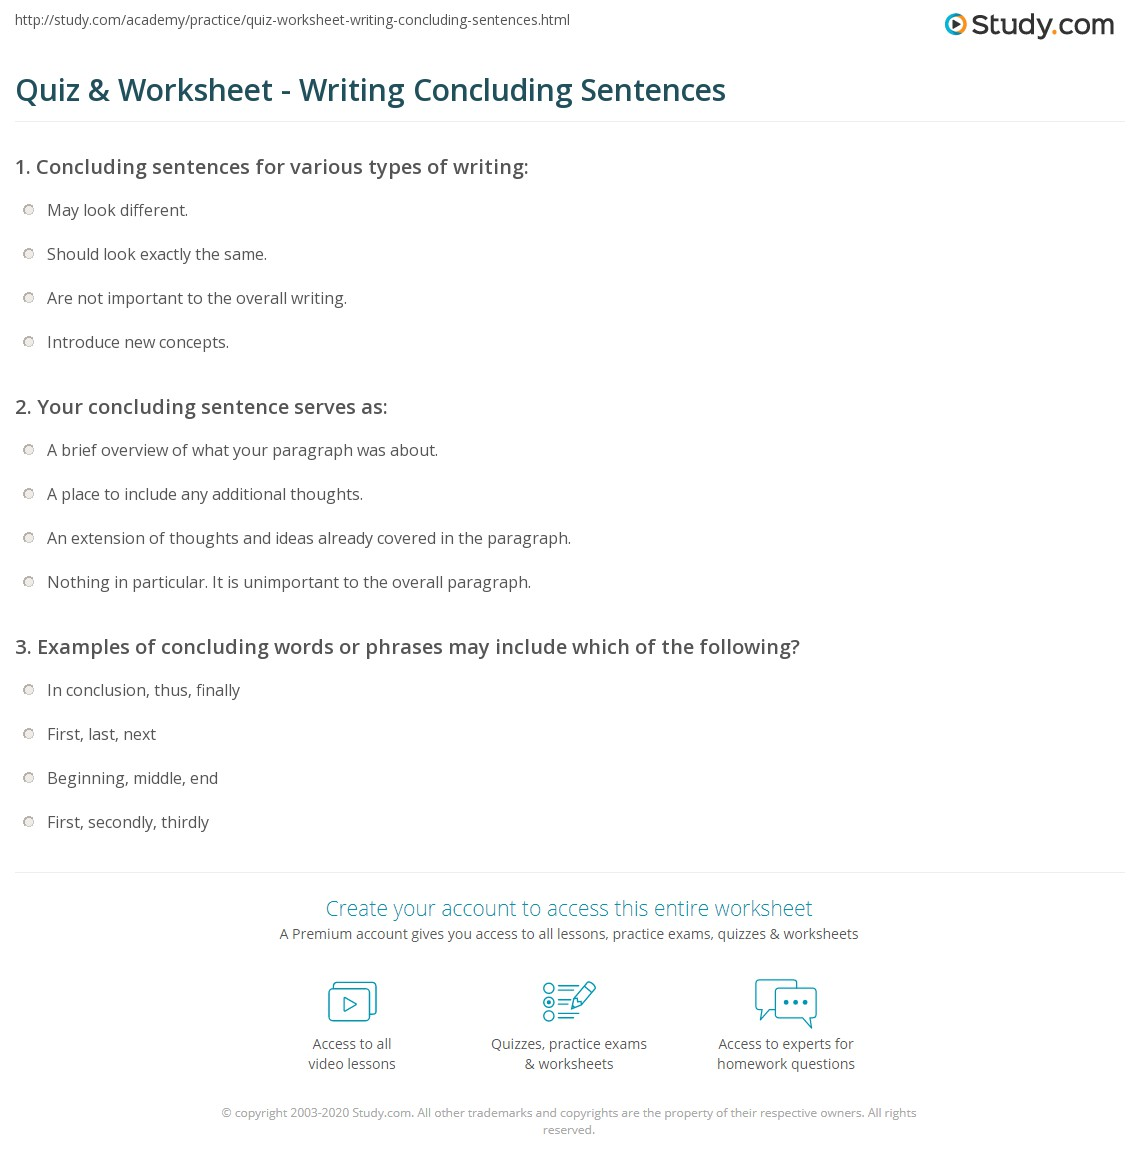 Quiz Worksheet Writing Concluding Sentences – Writing Sentences Worksheets